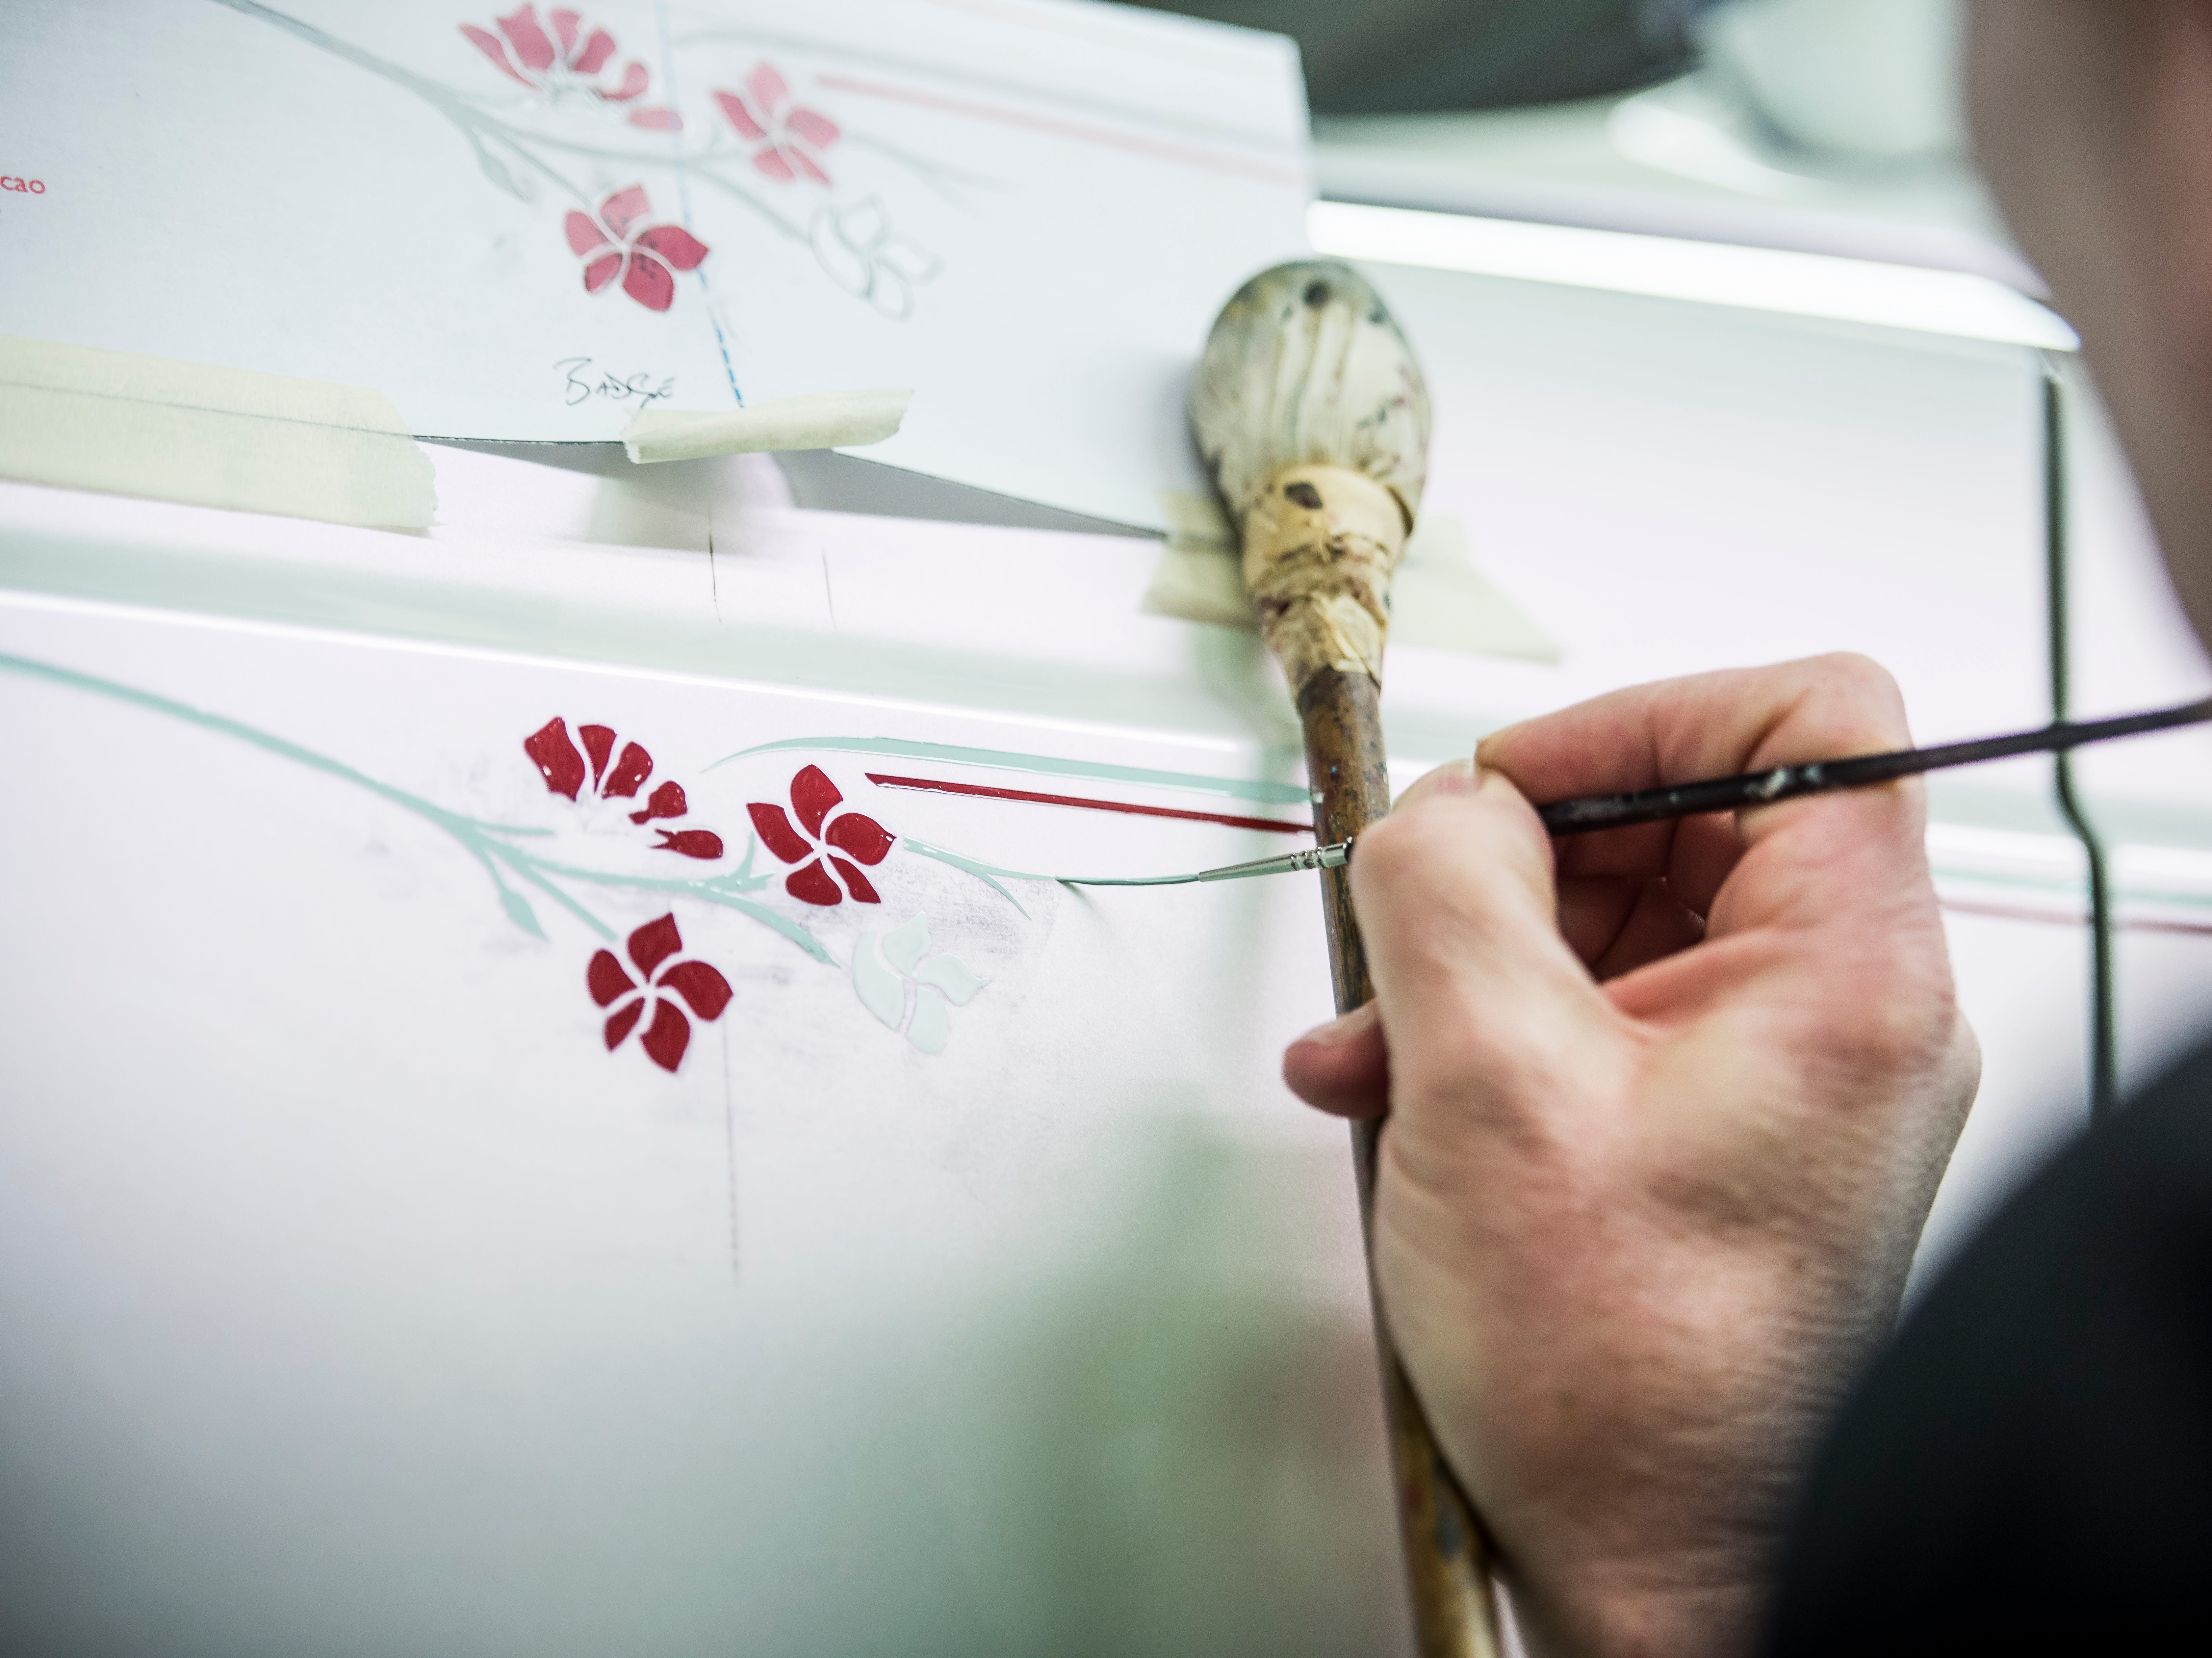 The Rolls-Royce Serenity Phantom has its detail stripping painted by hand.